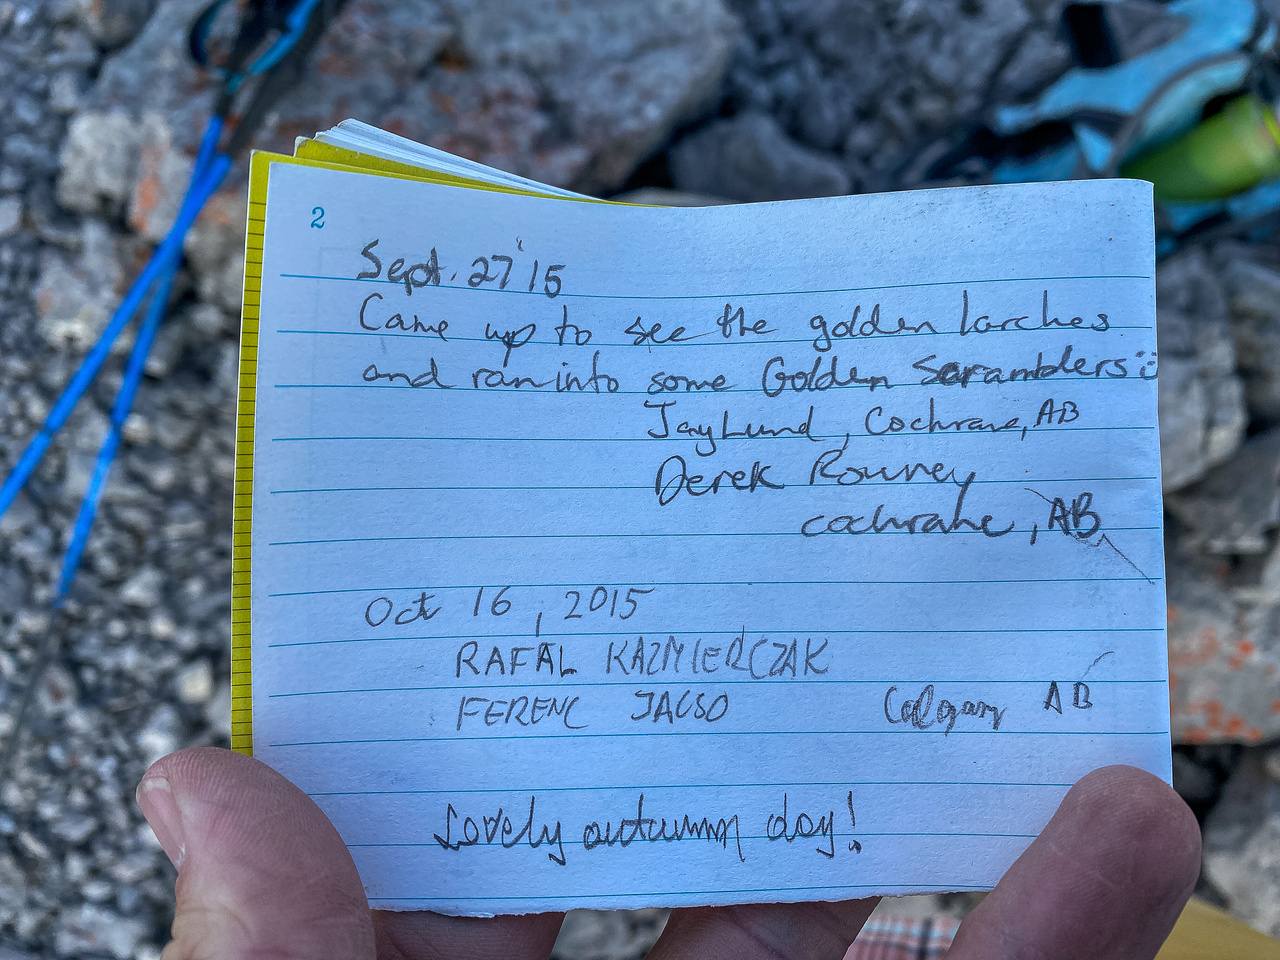 Summit register is pretty sparse for an easy peak.